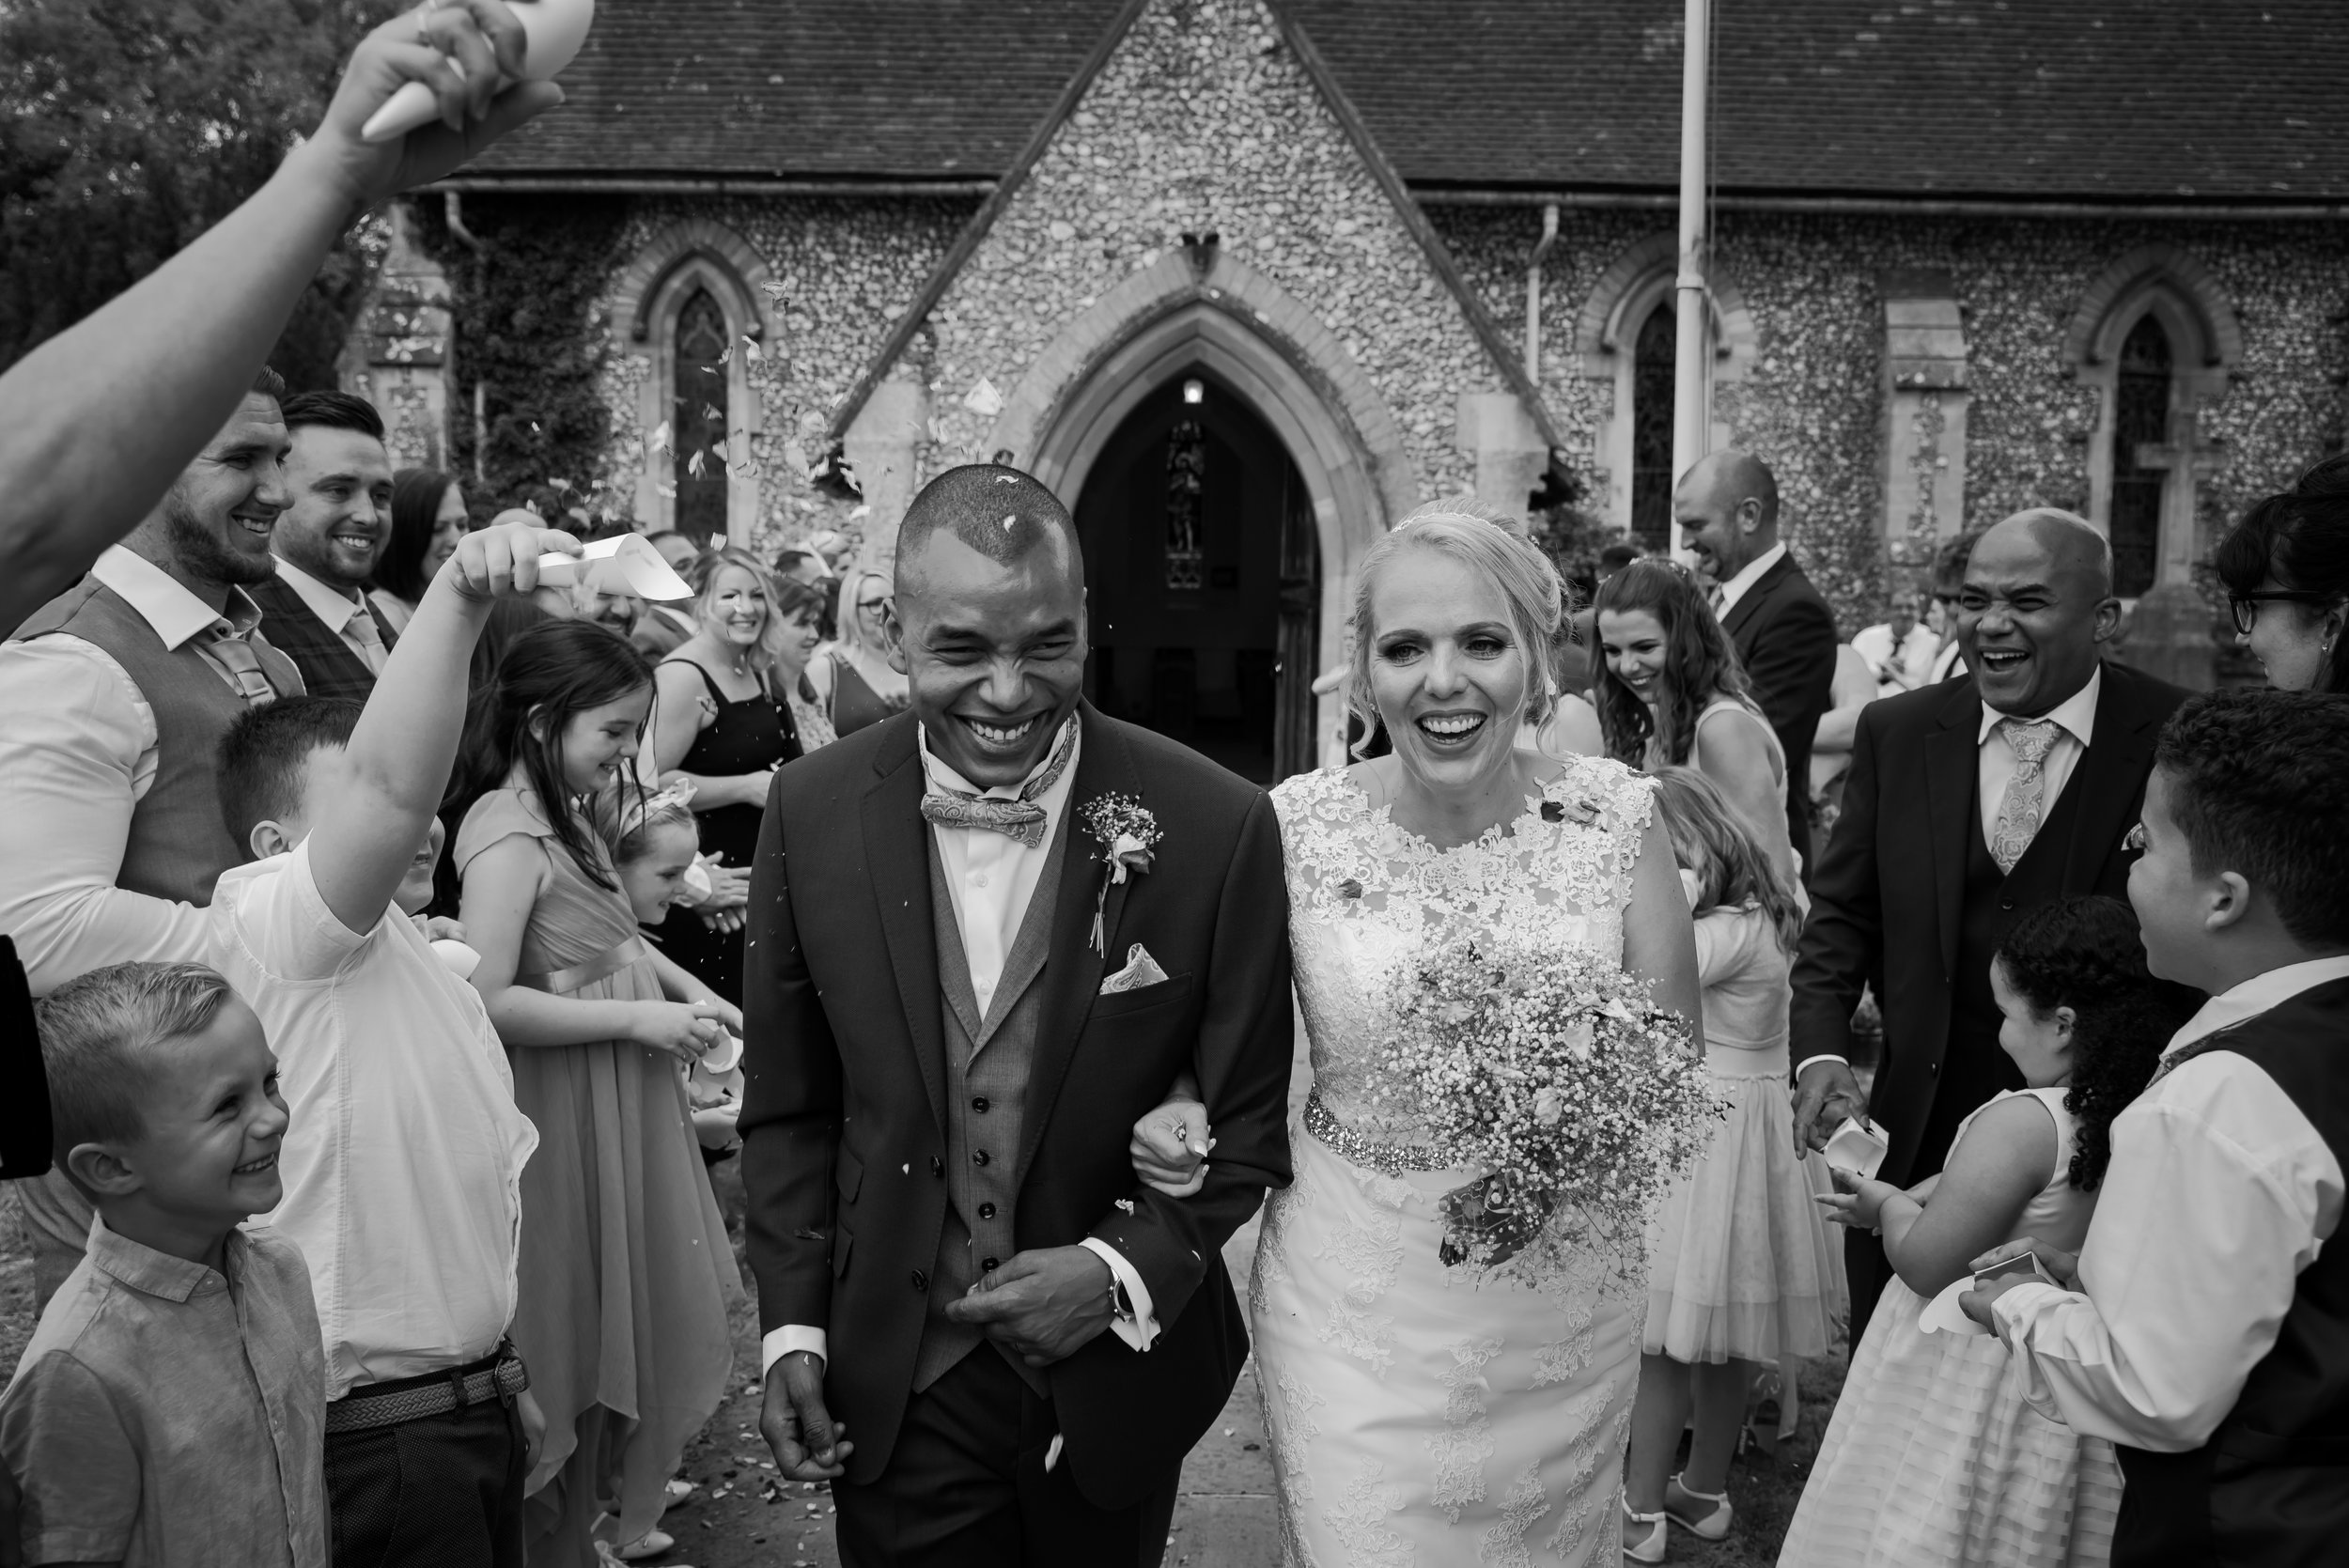 Wedding-confetti-St margarets church.jpg